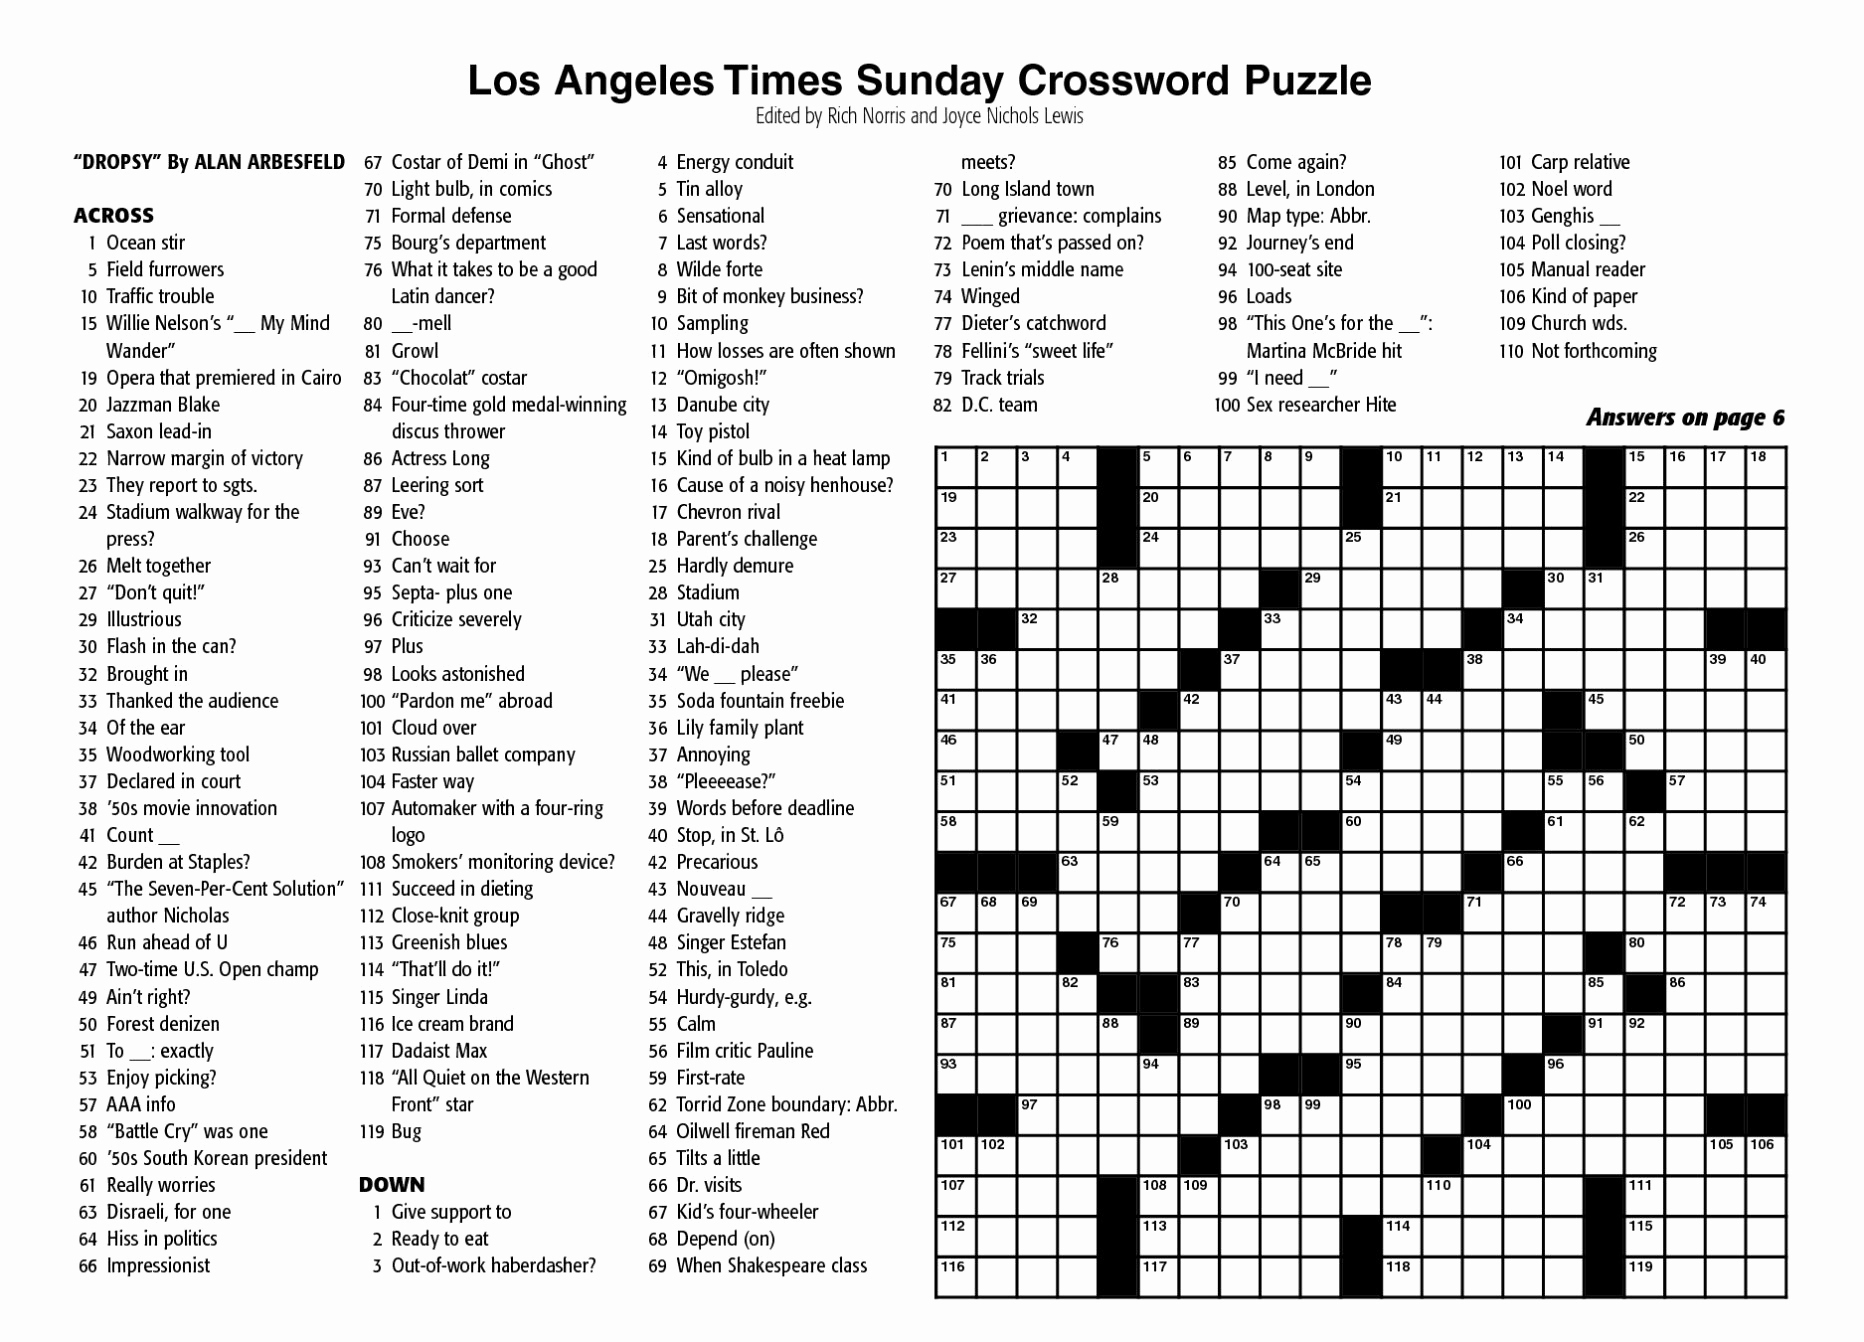 Sunday Crossword Puzzle Printable Ny Times Syndicated Answers - Free - La Times Crossword Puzzle Printable Version